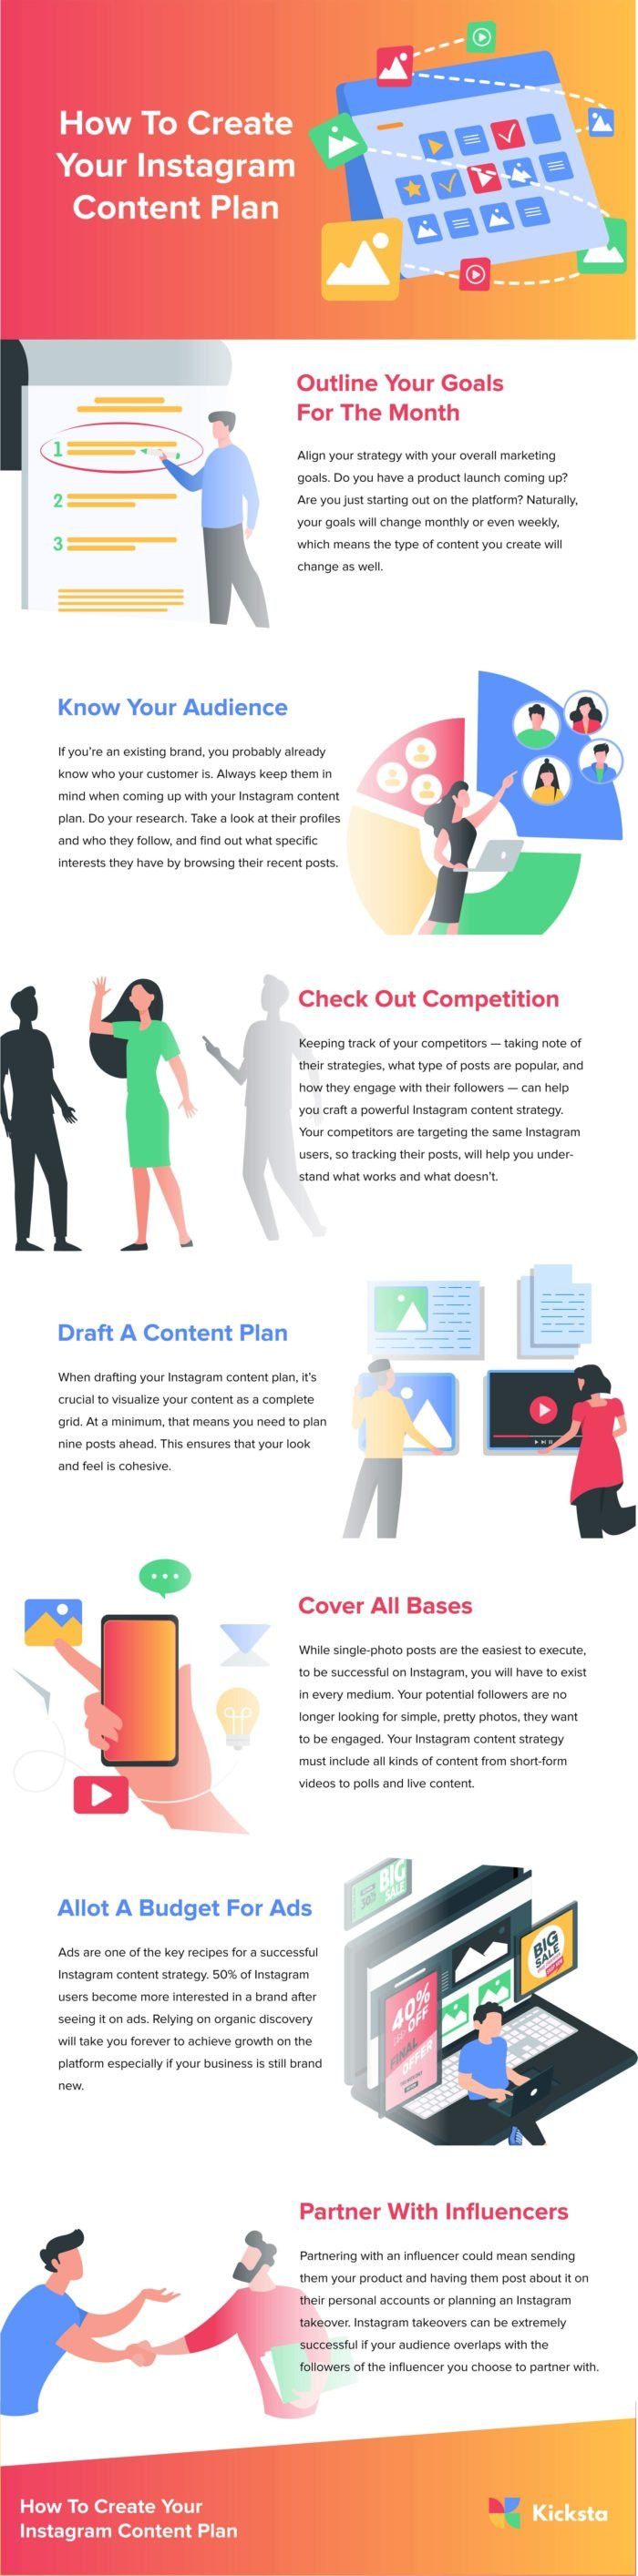 Infographic on how to create an Instagram content plan